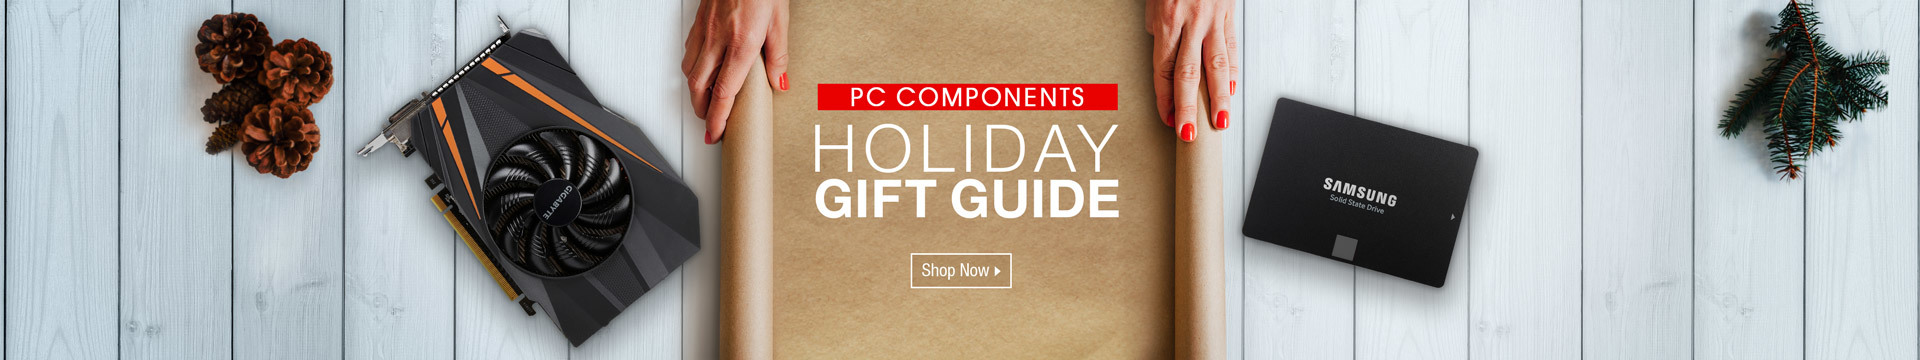 Holiday gift guide - PC components